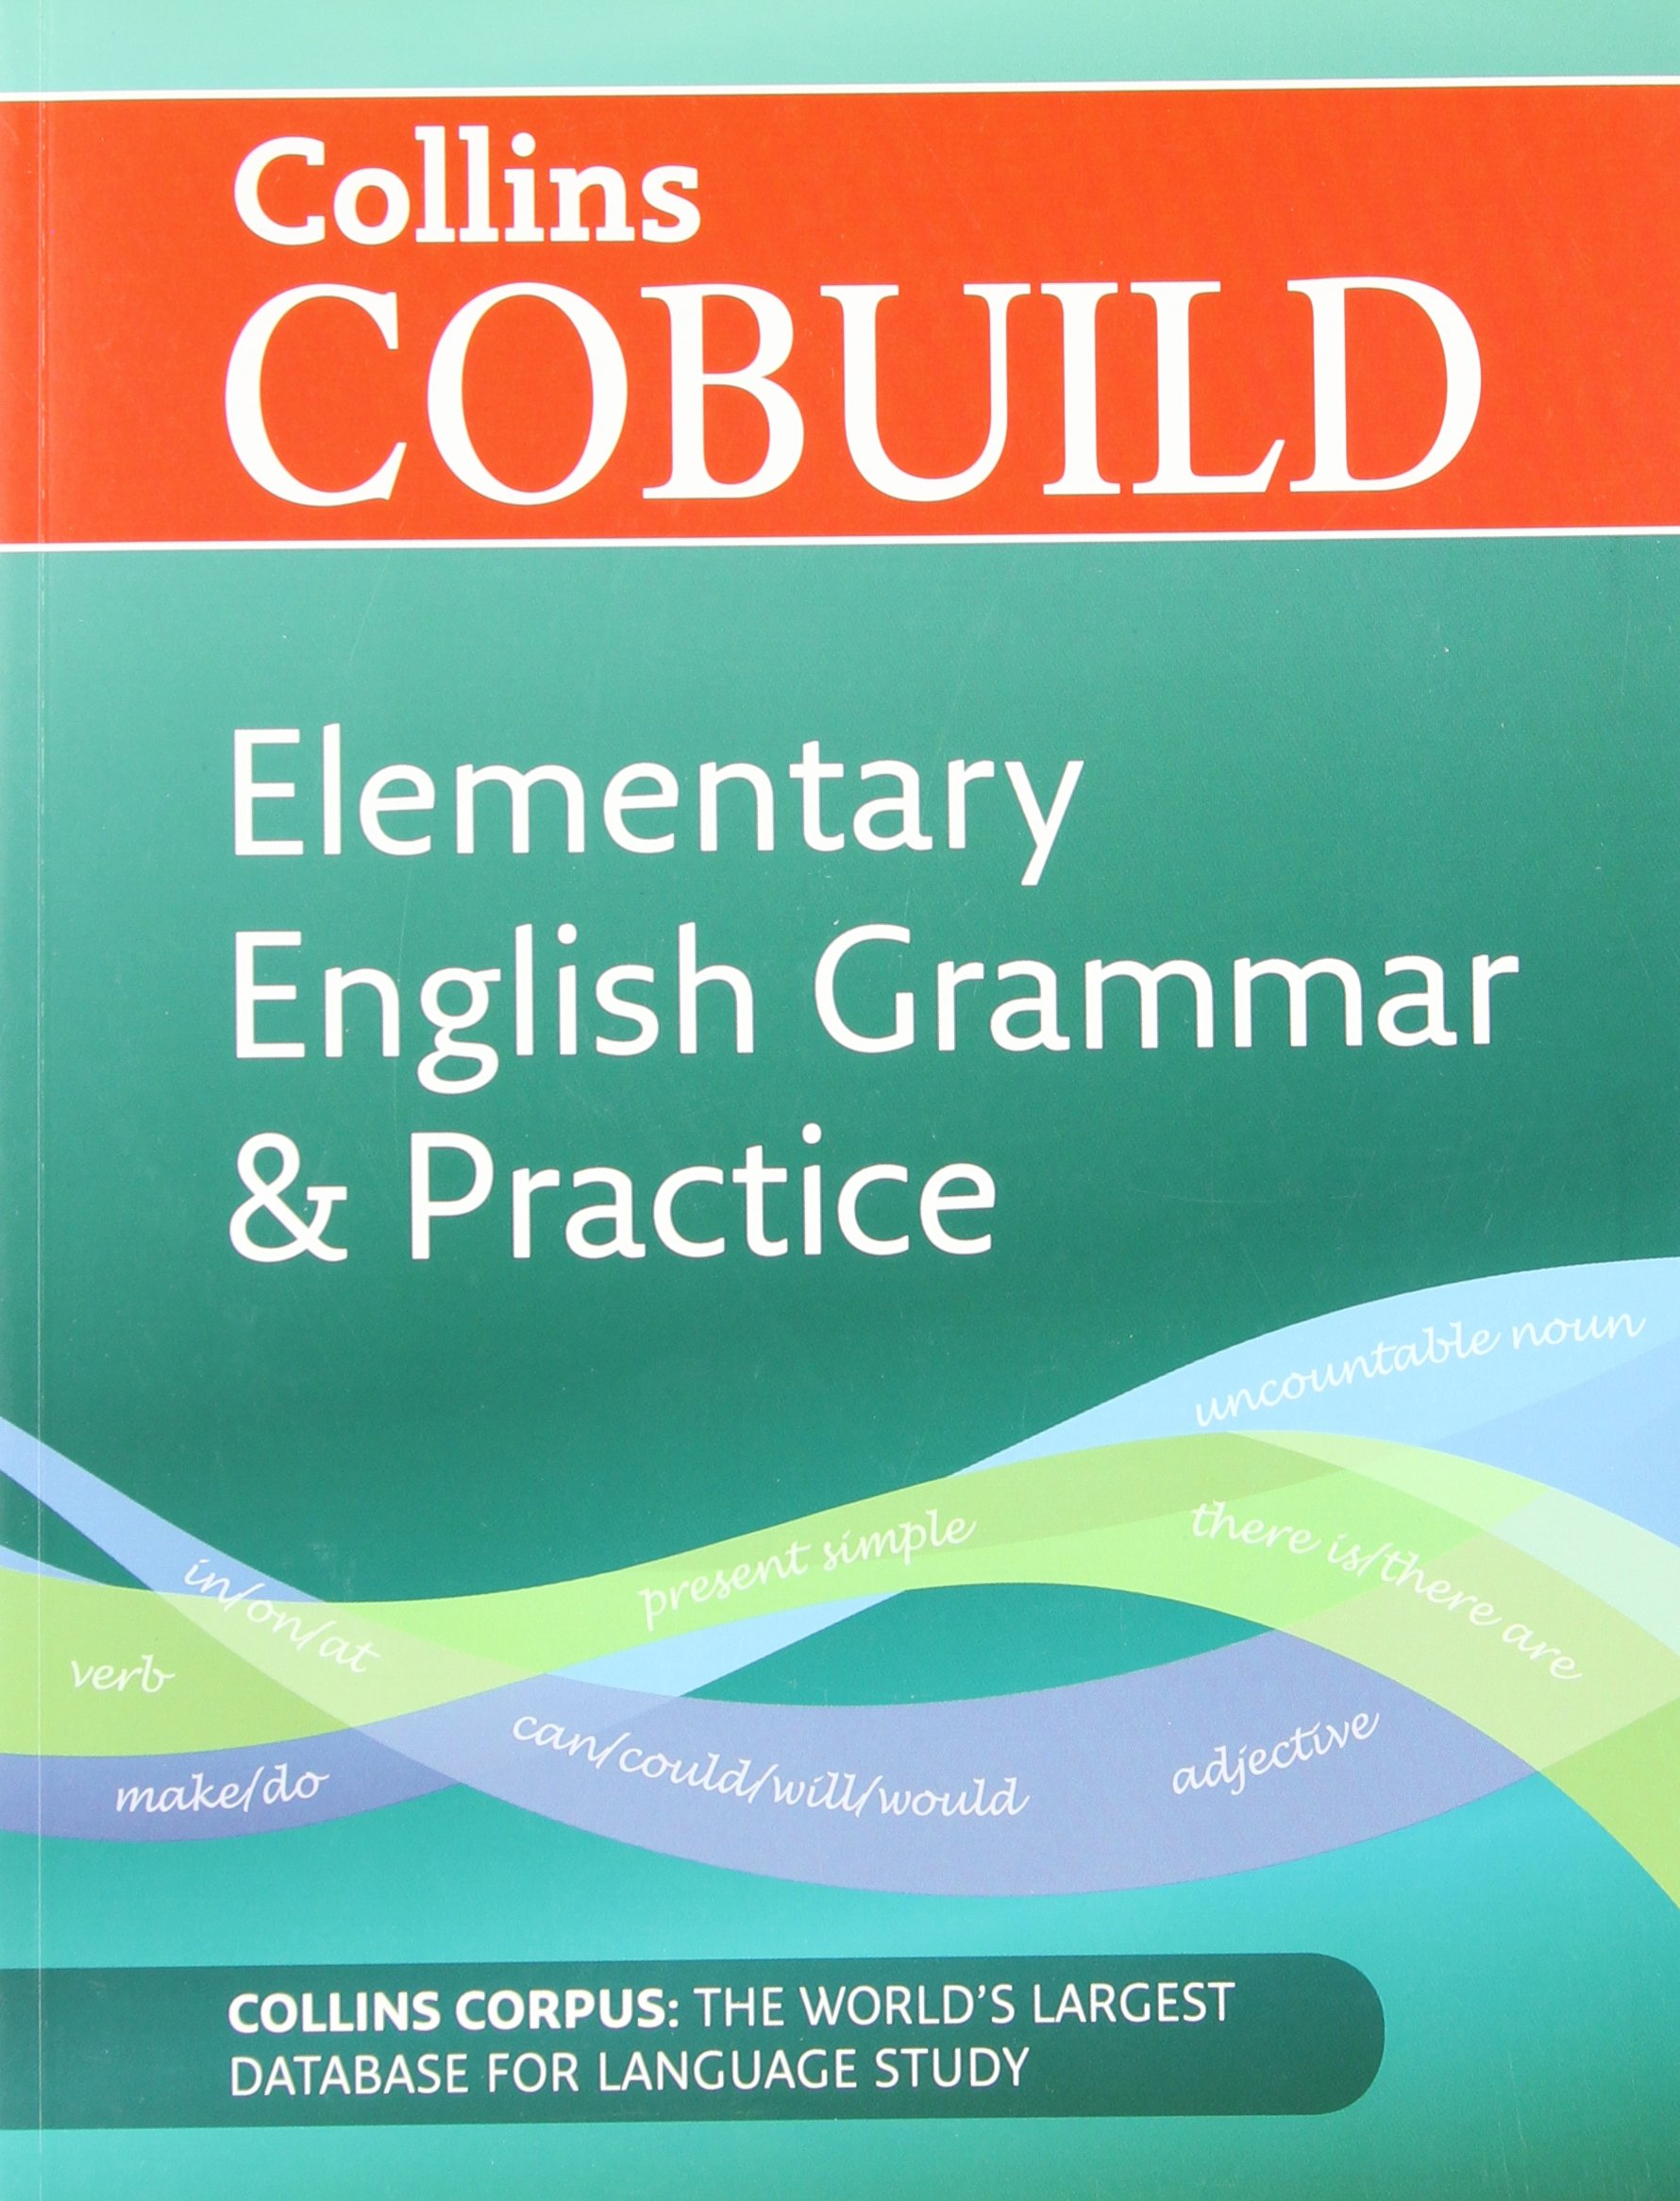 Worksheet Elementary English Grammar elementary english grammar and practice collins cobuild dave willis 9780007423712 amazon com books